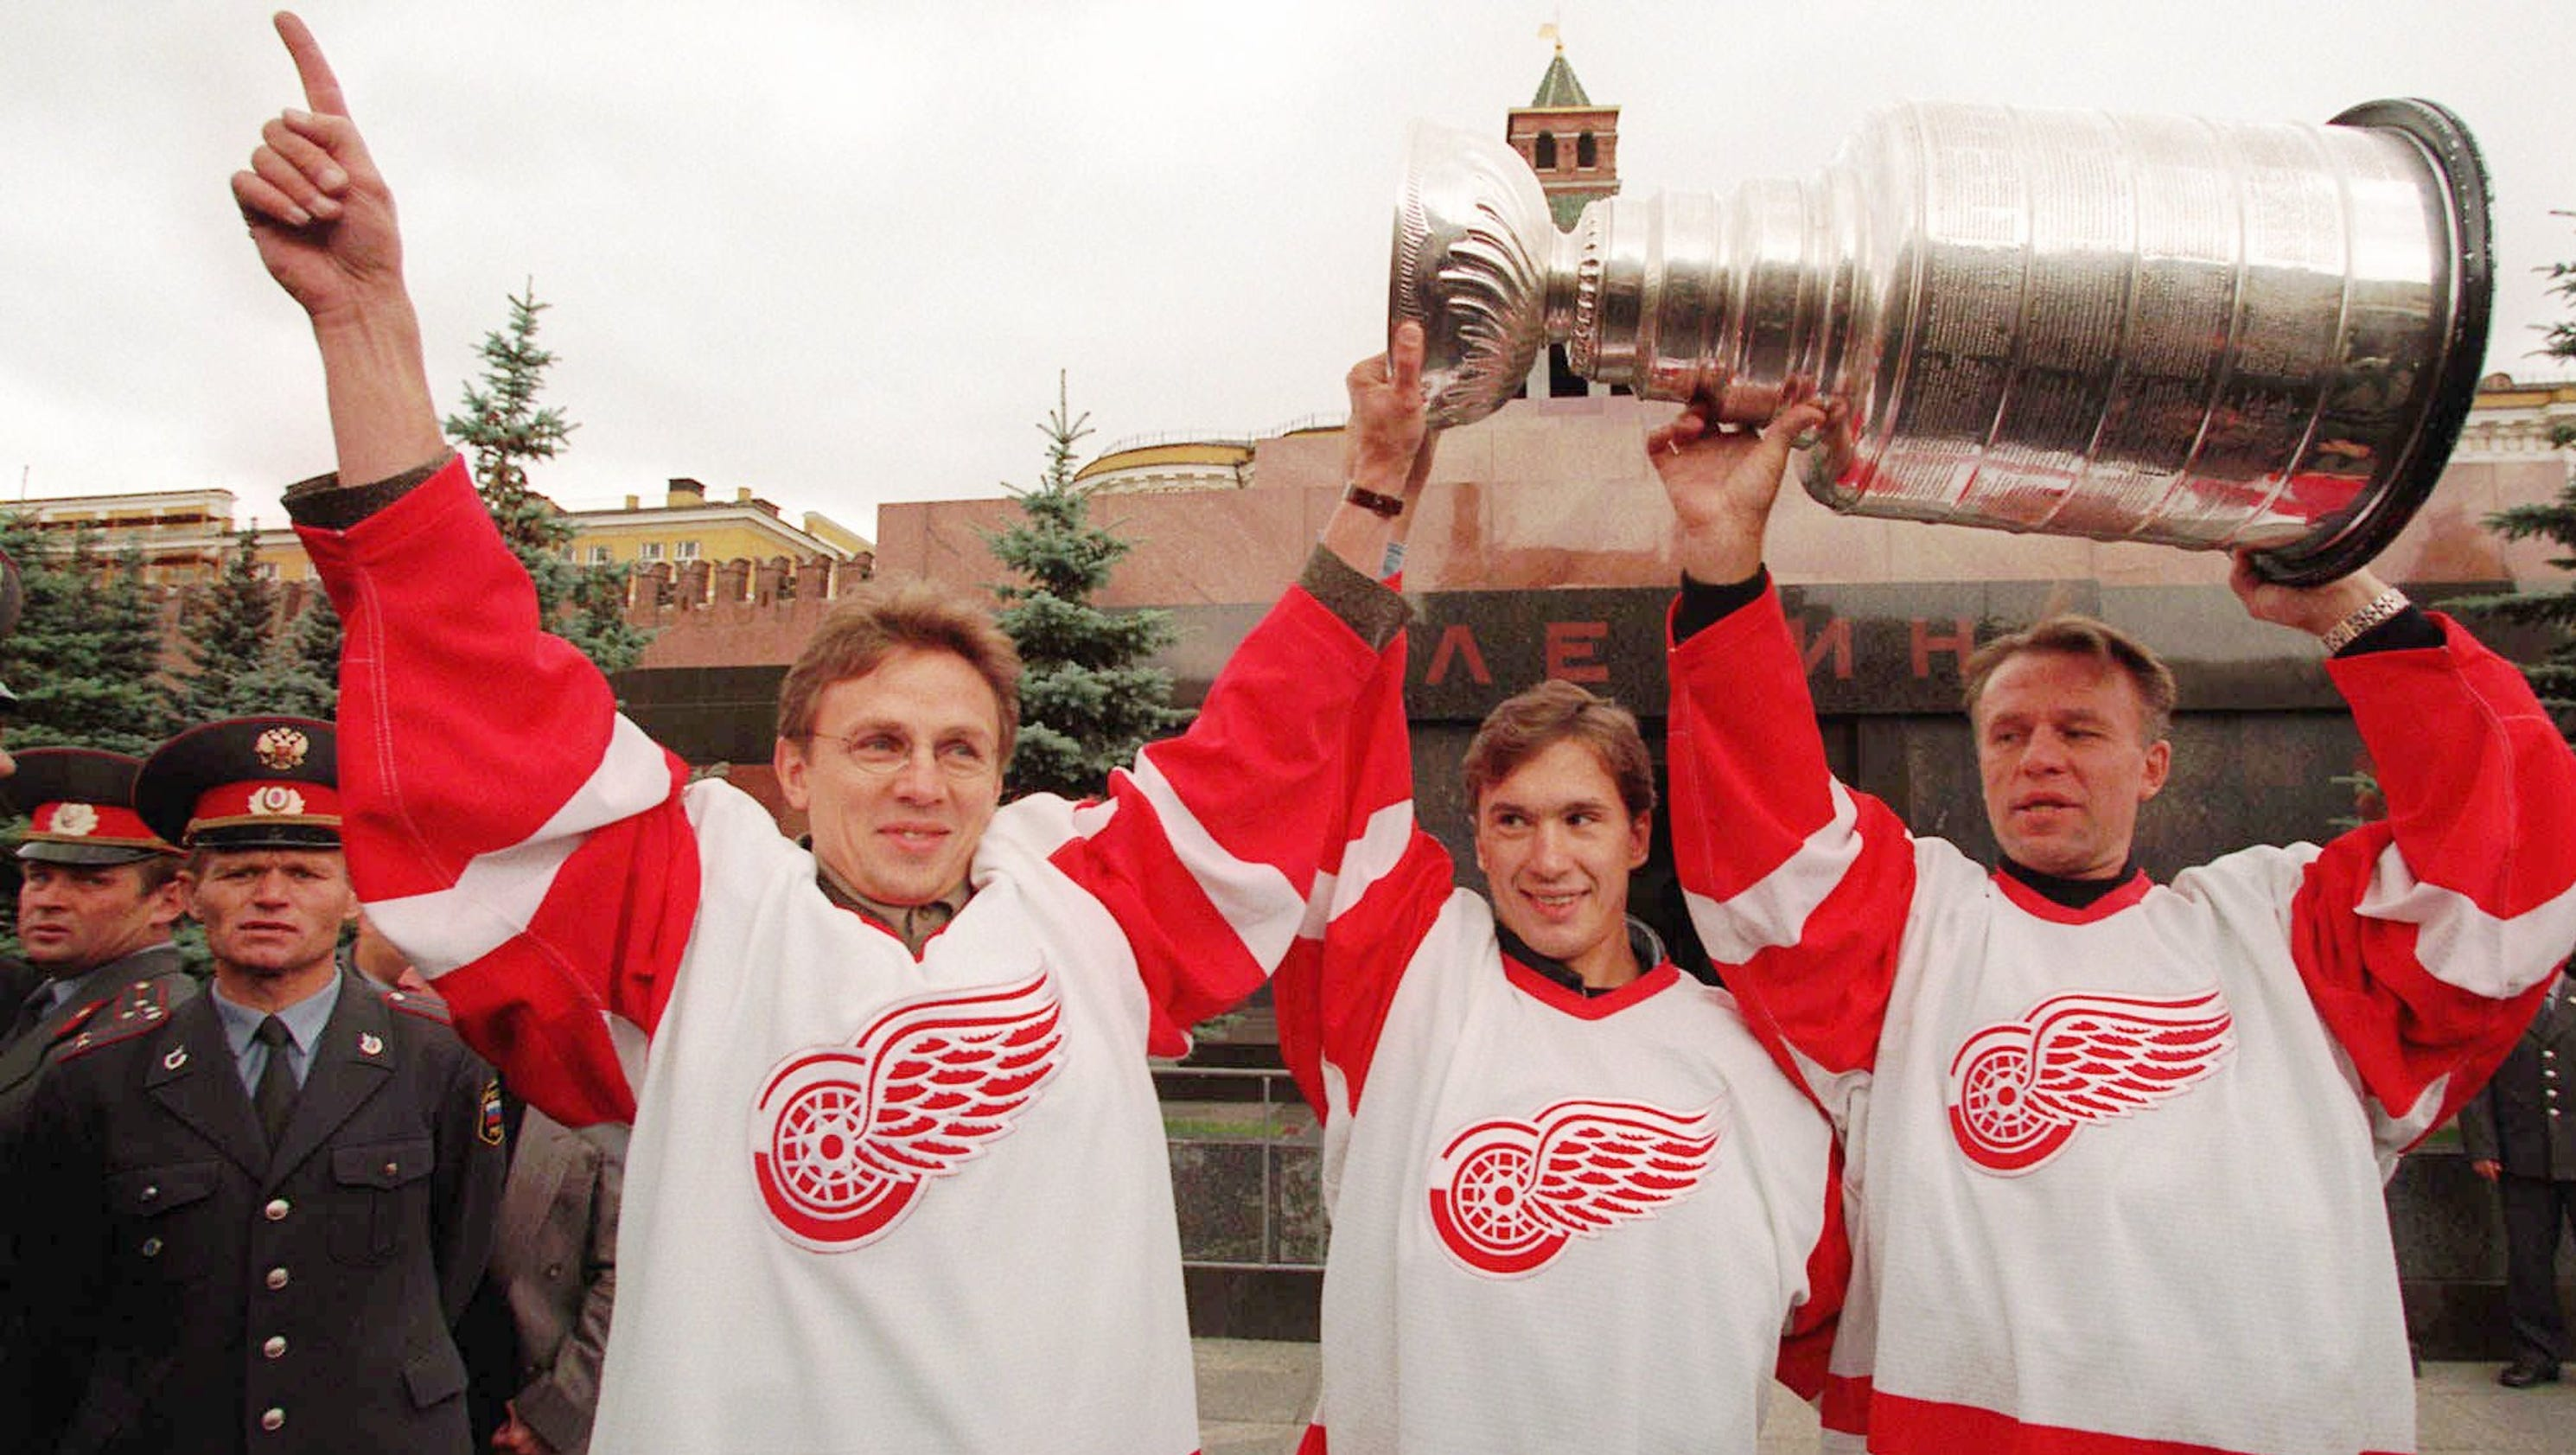 636326009102138688-28.russia-stanley-cup.a0160